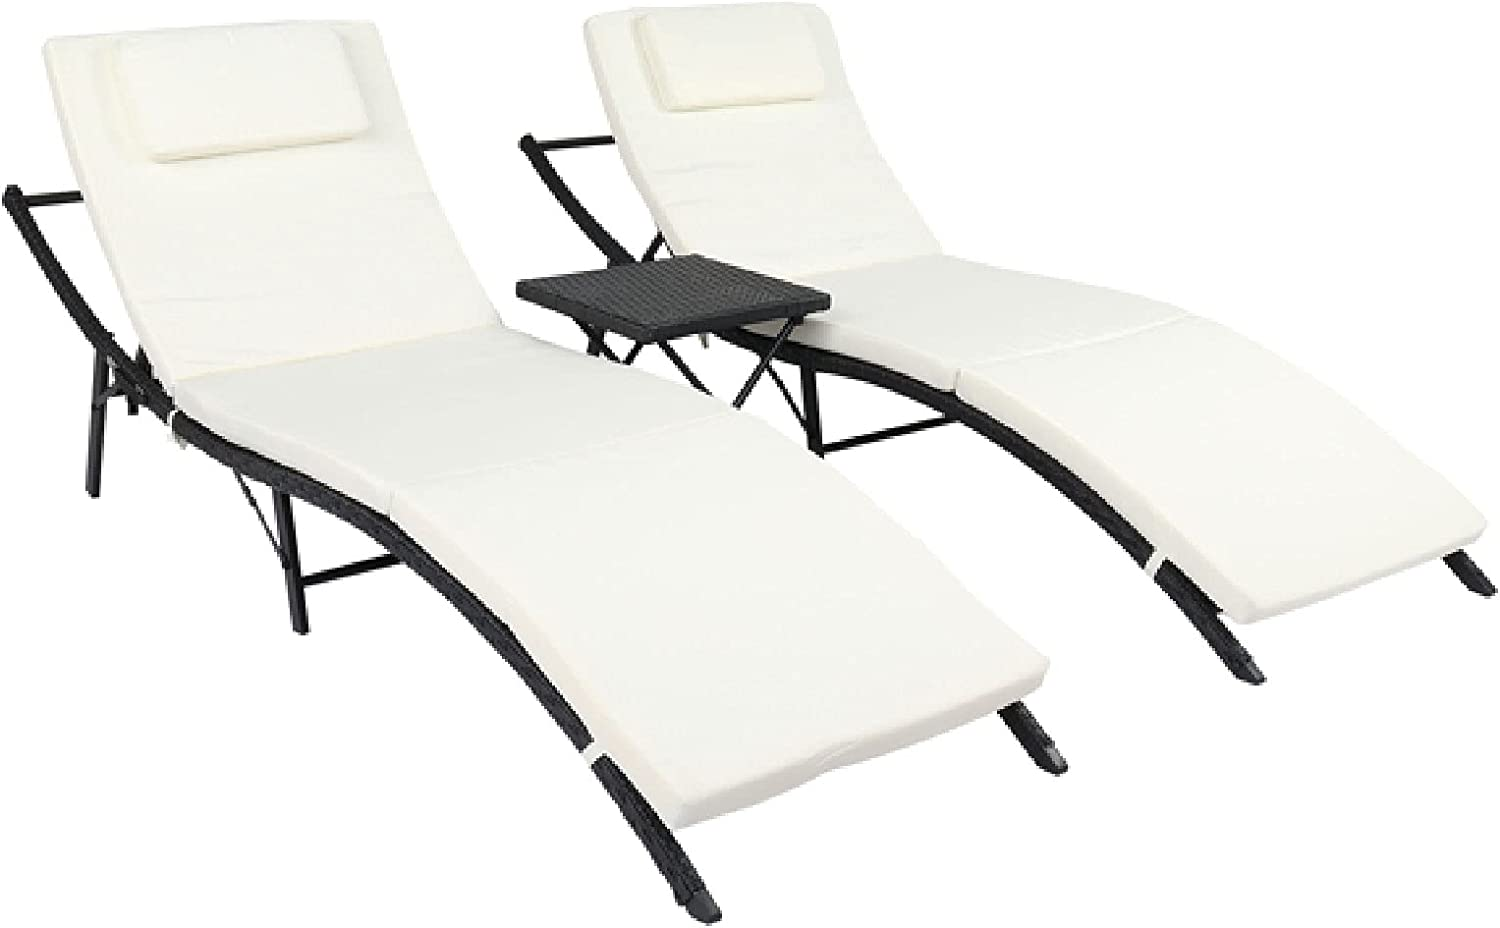 Lixiabeidai Chaise Lounge Set excellence Baltimore Mall of 3 Chair Beach Po Outdoor